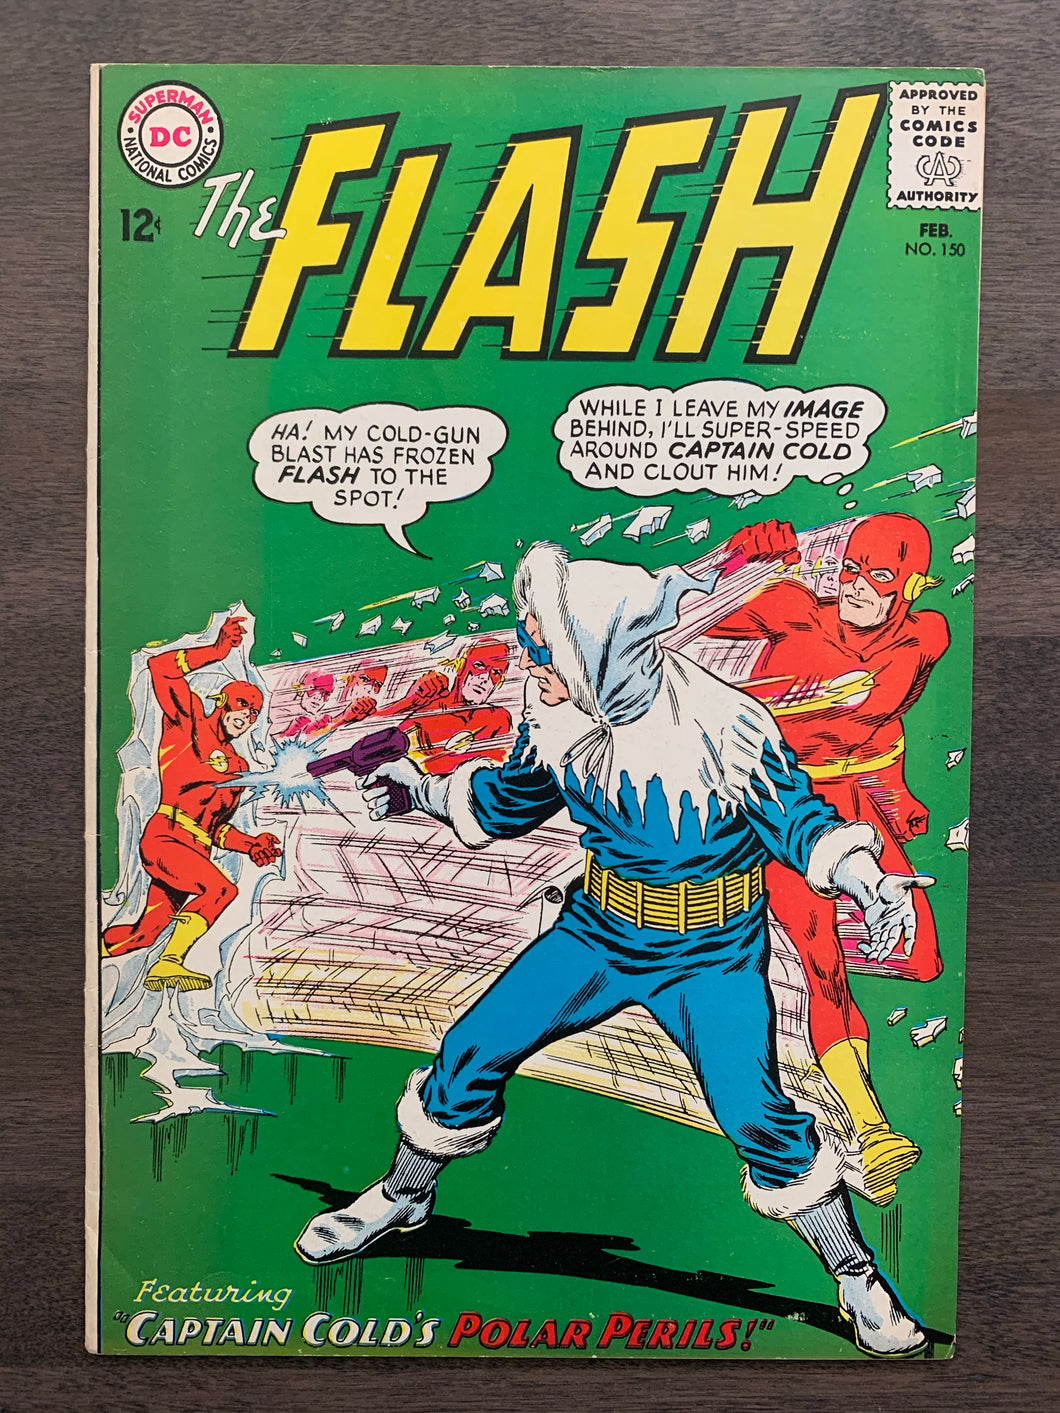 Flash #150 - Captain Cold